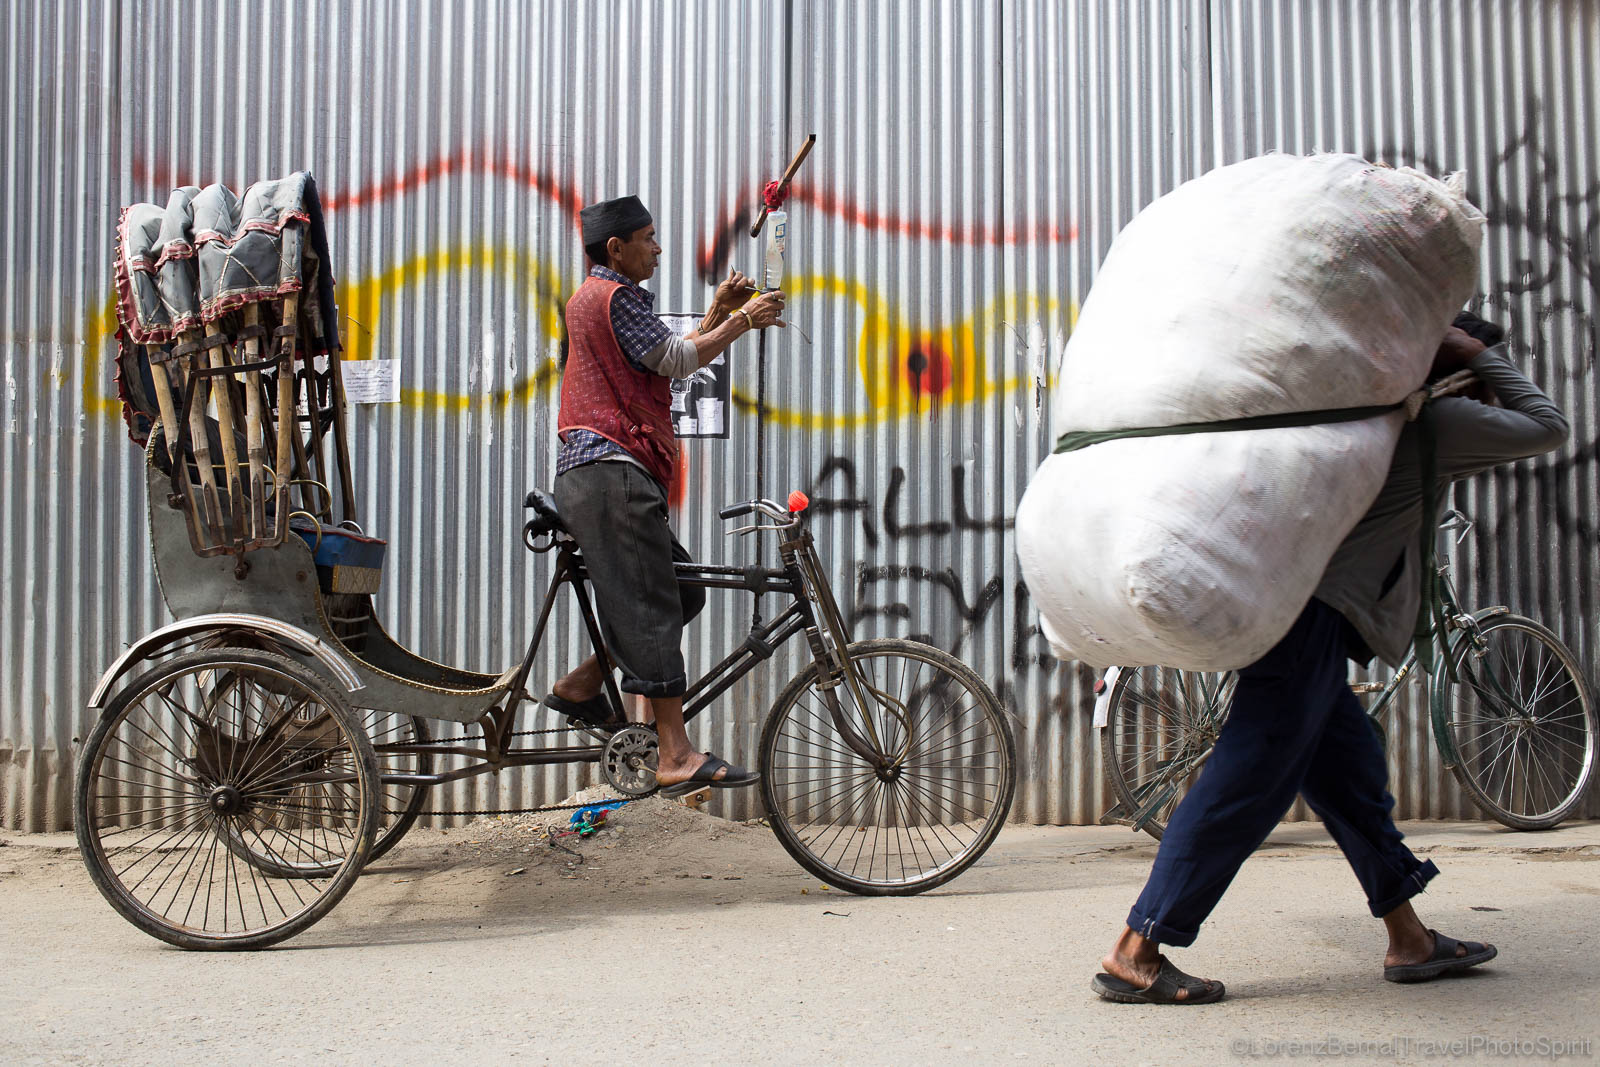 A rickshaw and a man carrying bags on his back : two different kinds of transportation in the streets of Thamel district, Kathmandu, Nepal.